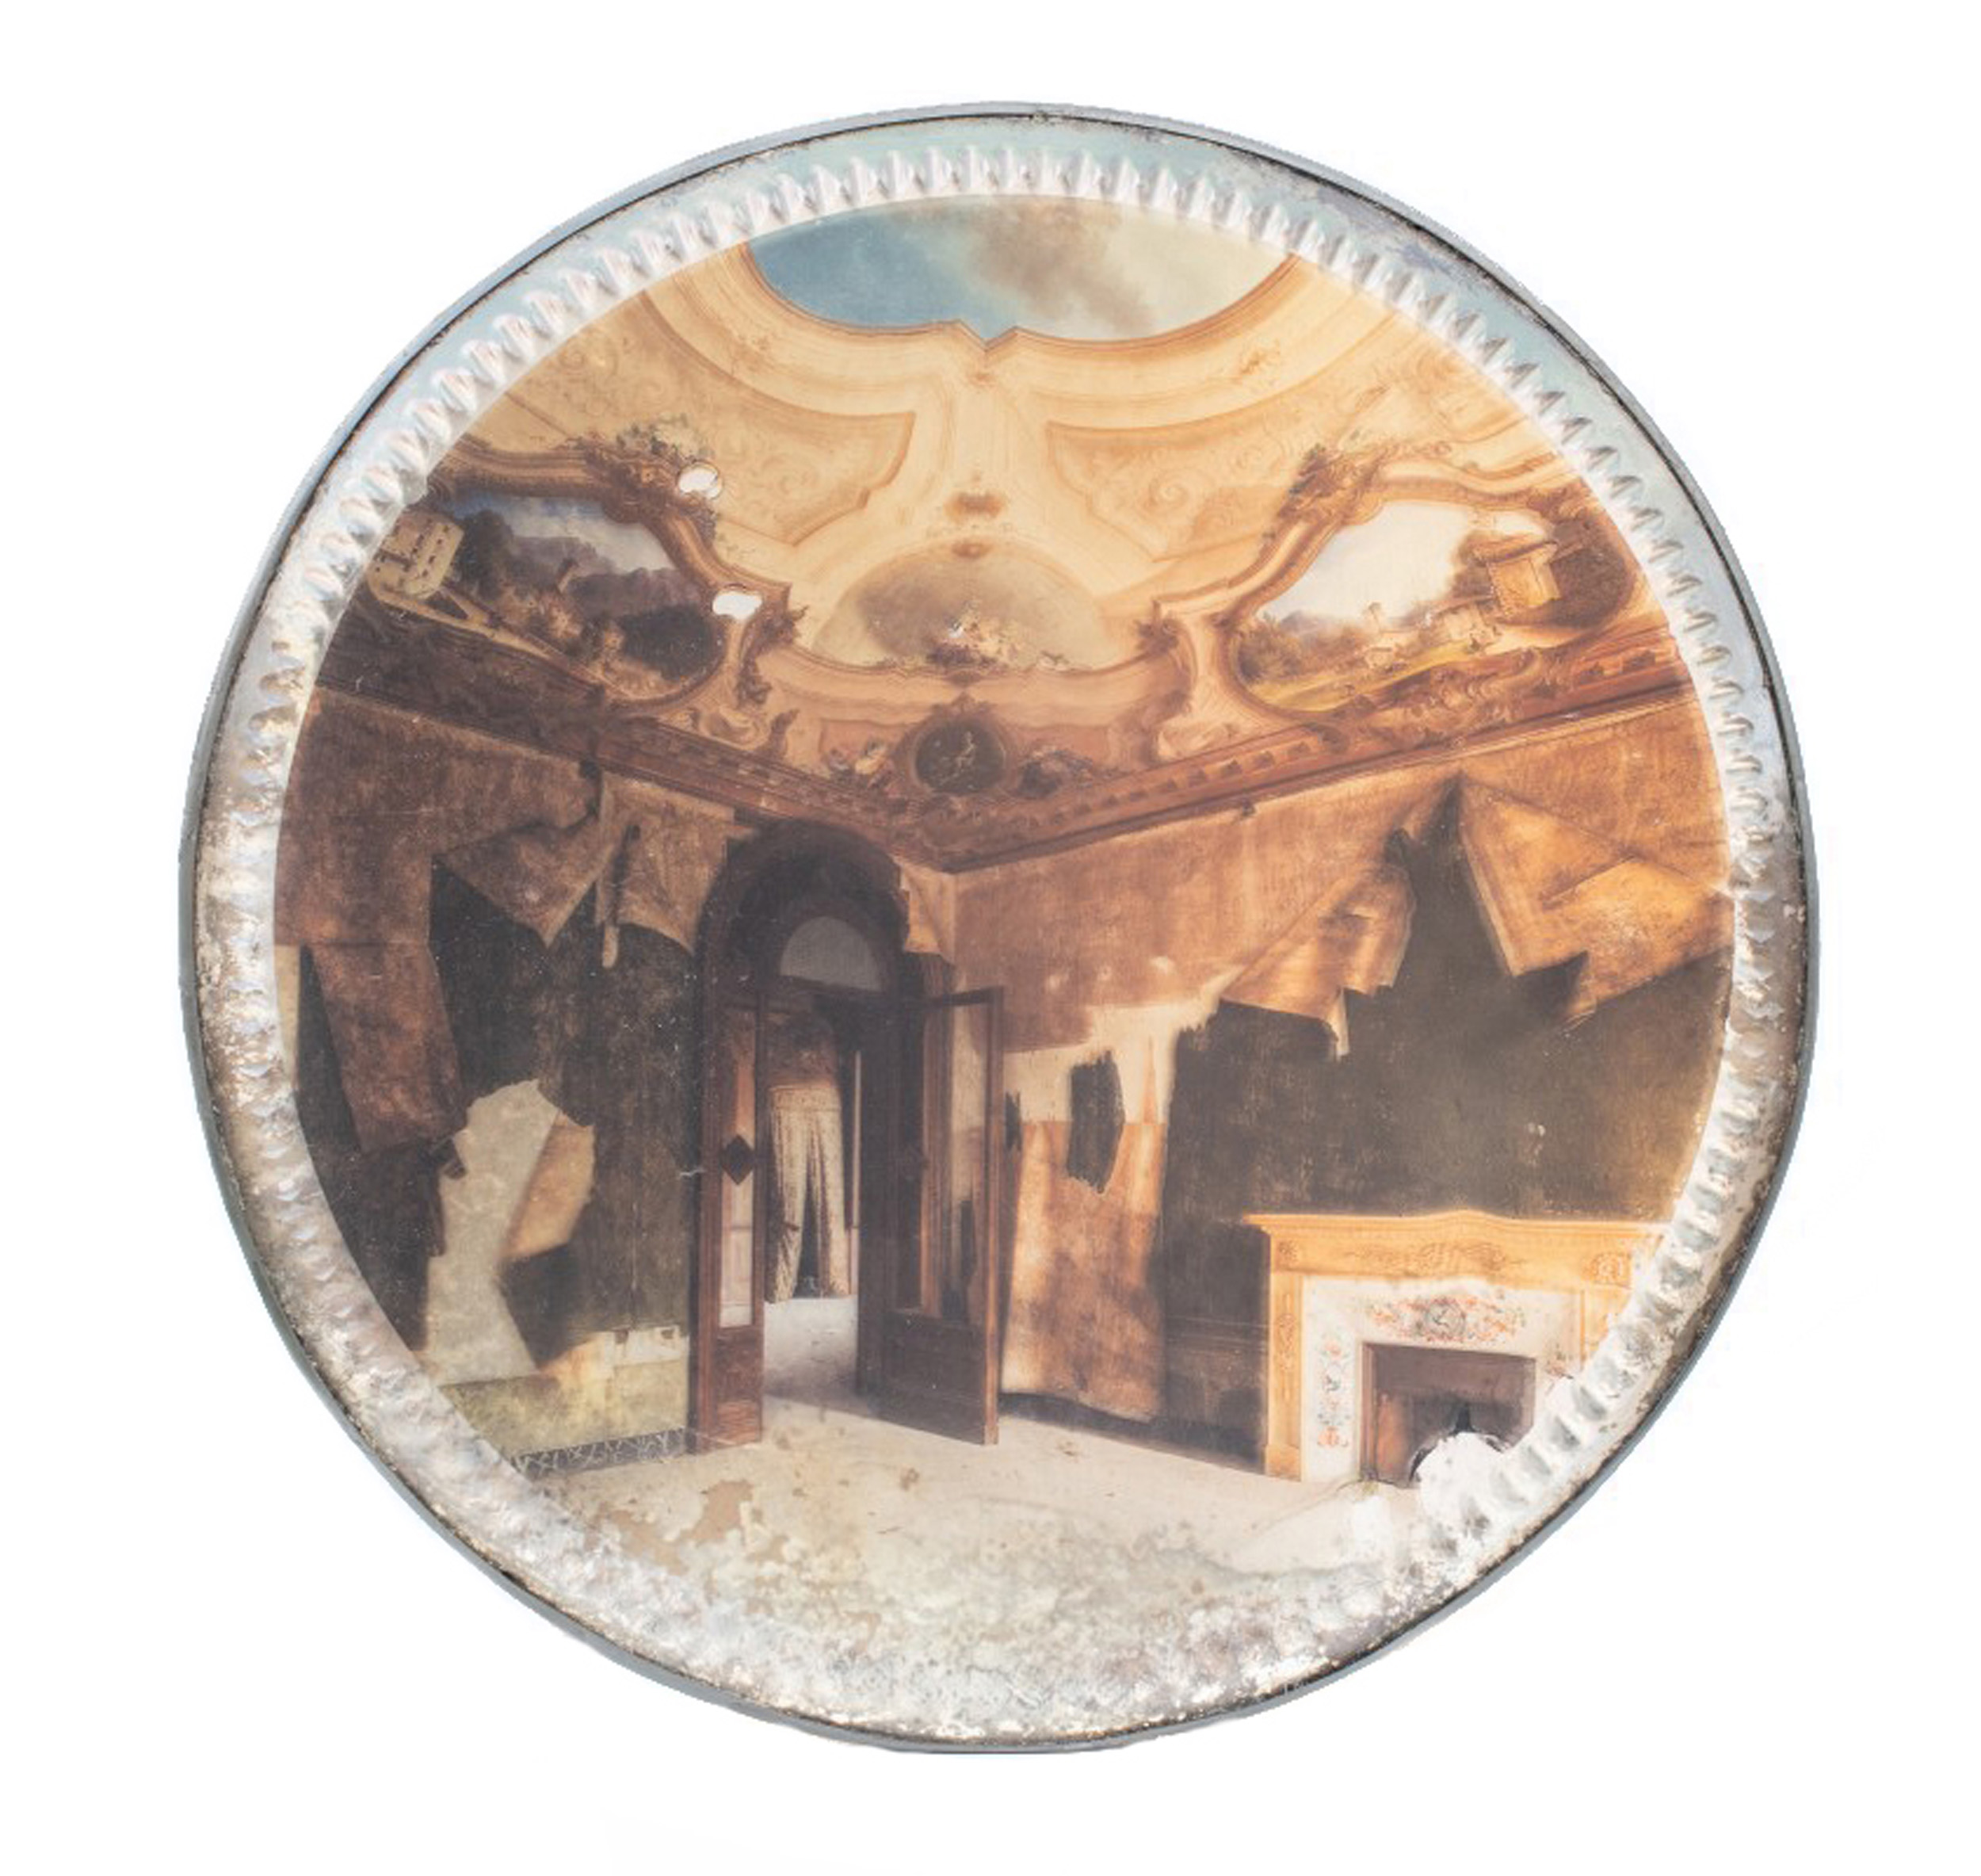 Baroque Villa on Foxed Mirror, 2018